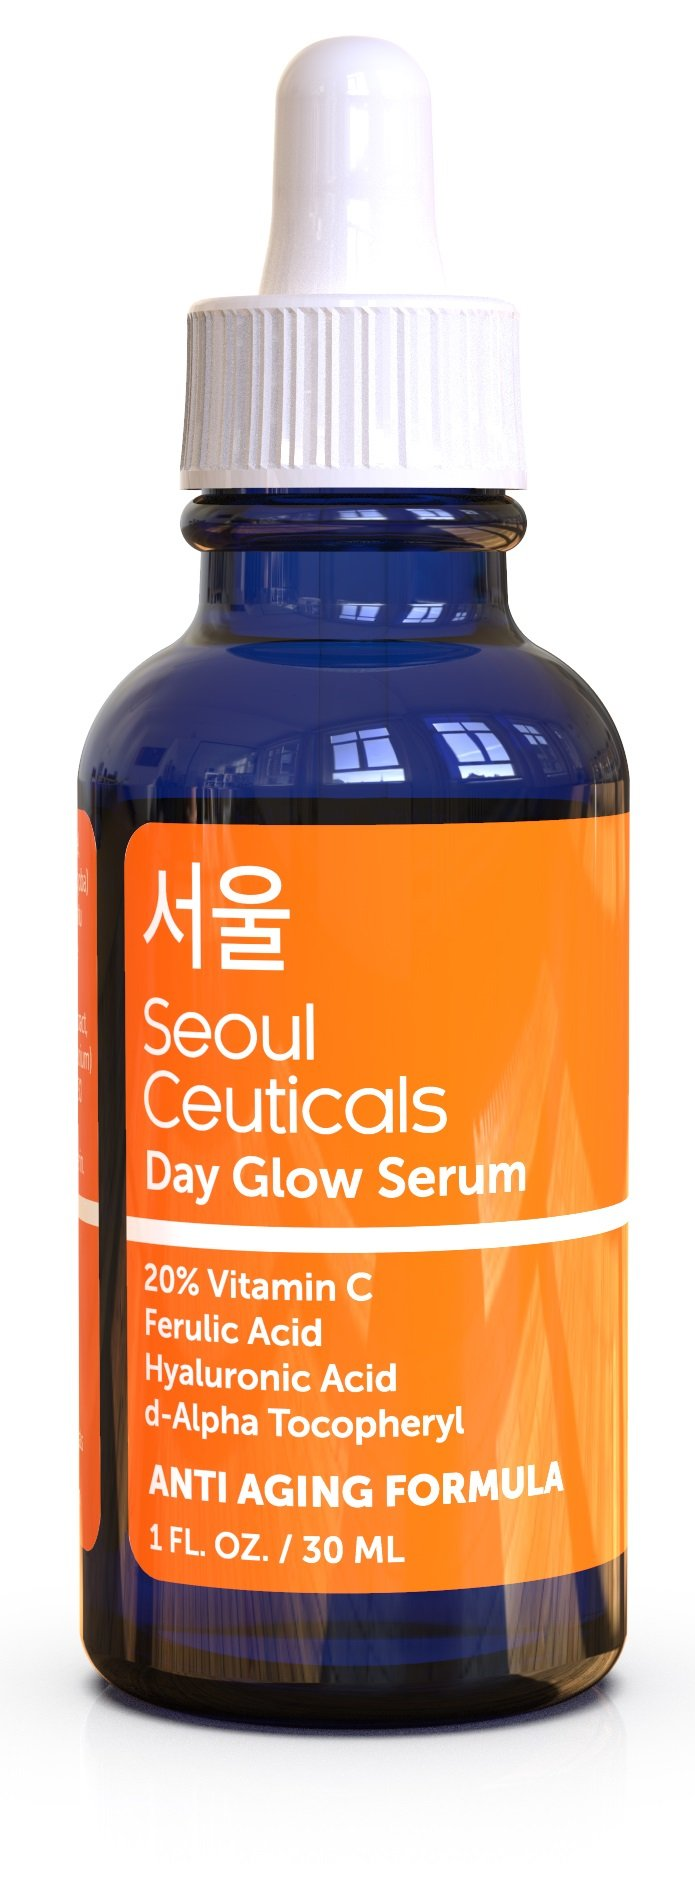 Korean Skin Care K Beauty - 20% Vitamin C Hyaluronic Acid Serum + CE Ferulic Acid Provides Potent Anti Aging, Anti Wrinkle Korean Beauty 1oz by SeoulCeuticals